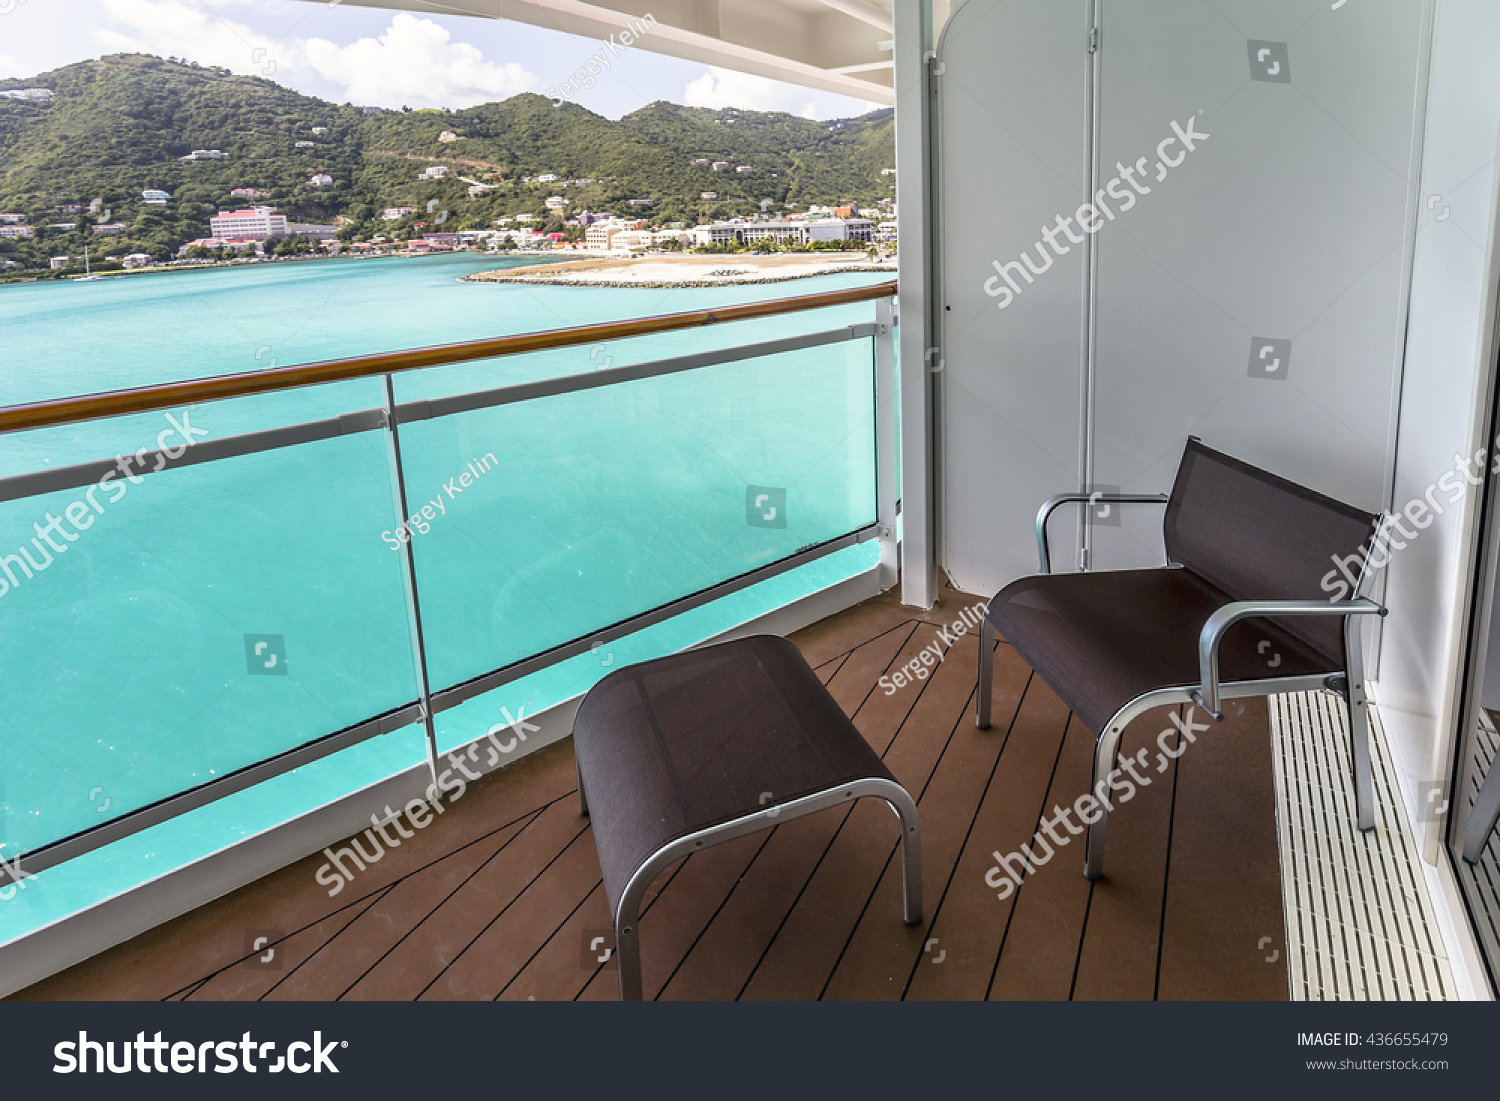 Balcony view on the cruise ship stock photo 436655479 for Balcony in cruise ship